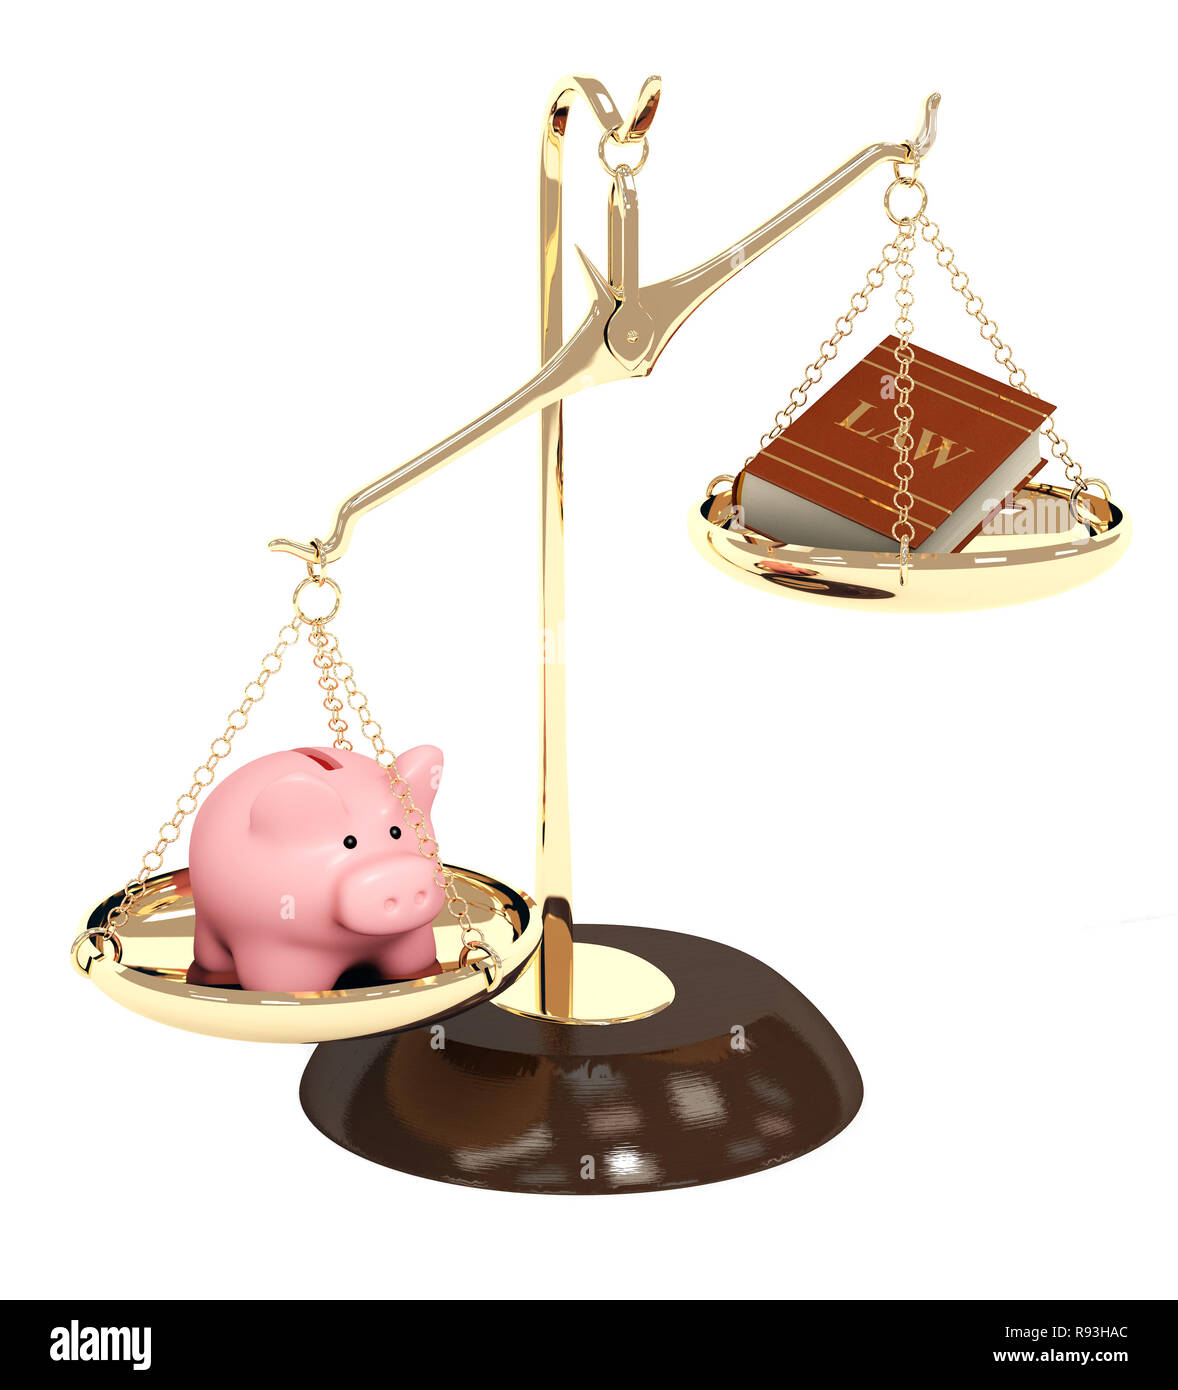 Piggy bank, gold scales and code of laws. Objects isolated over white - Stock Image